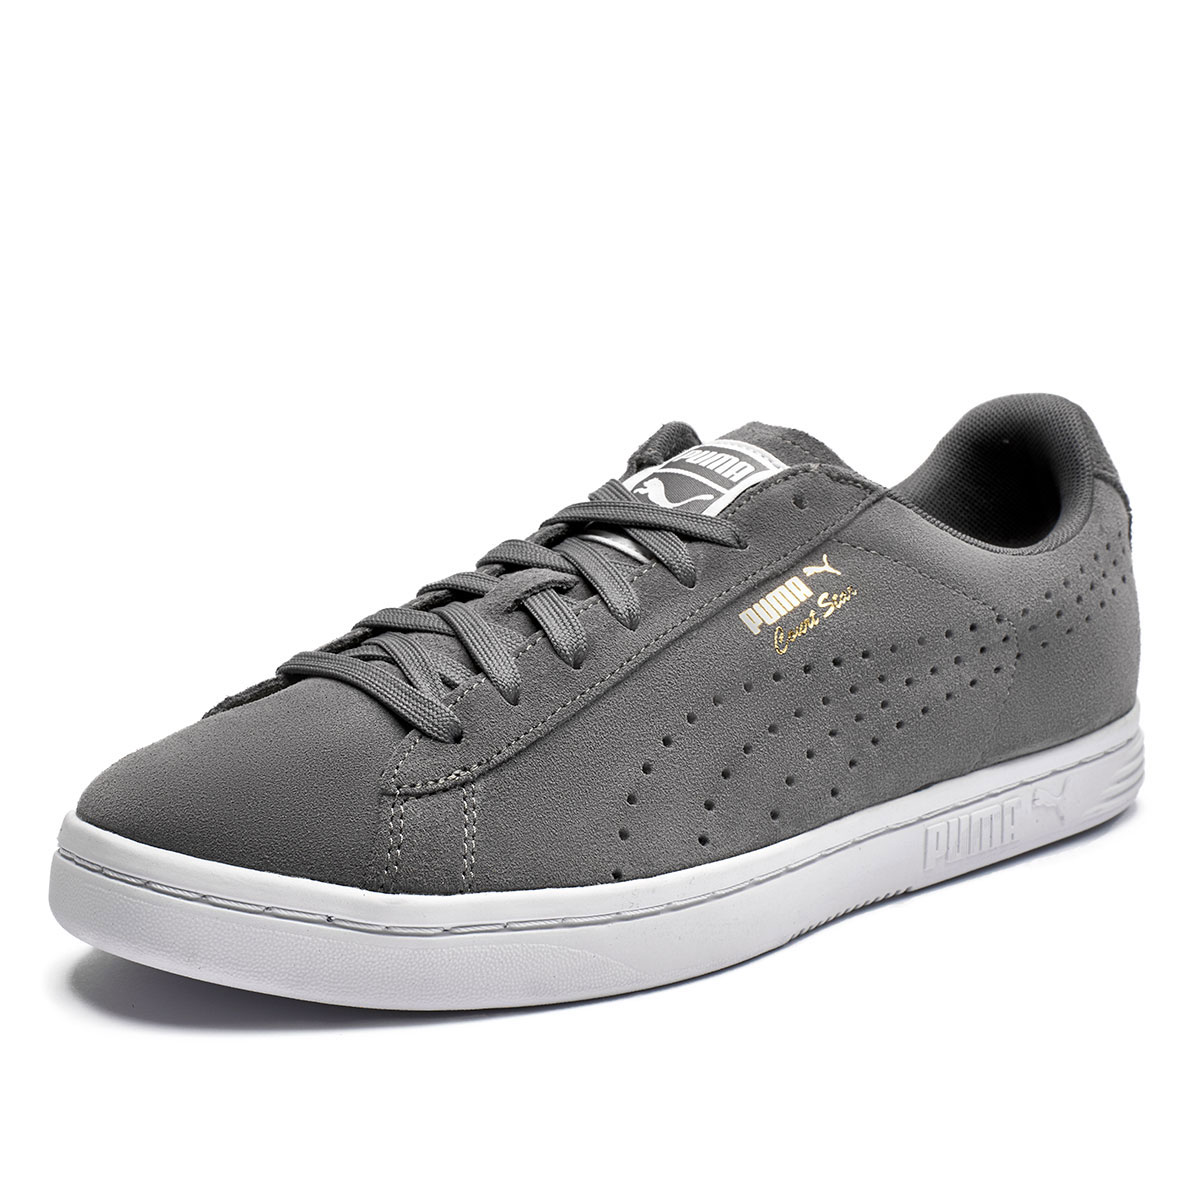 wholesale dealer 7a183 00805 Puma Court Star Suede Gray